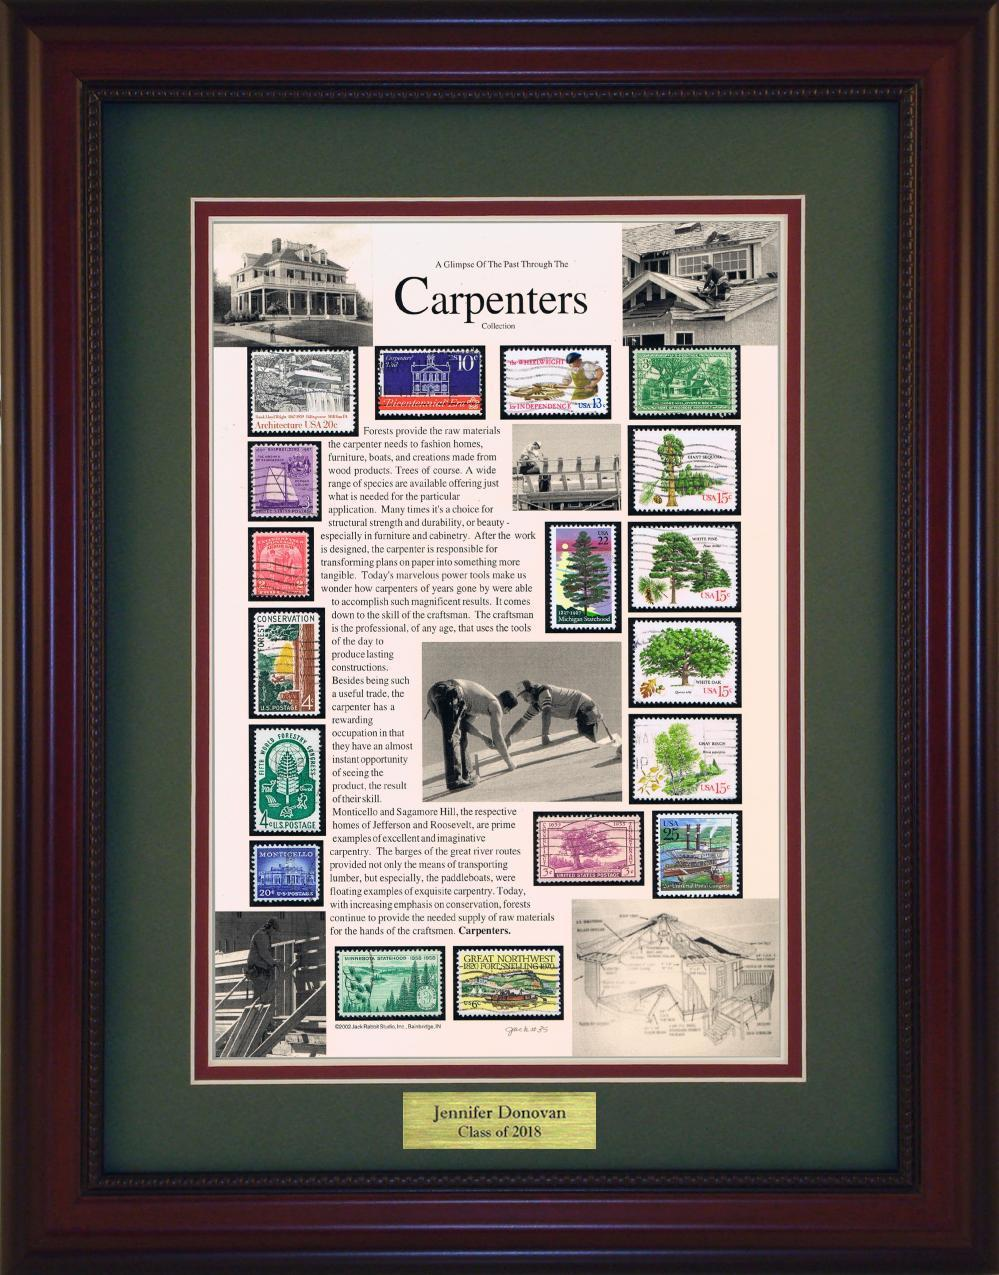 Carpenter - Personalized Unique Framed Gift